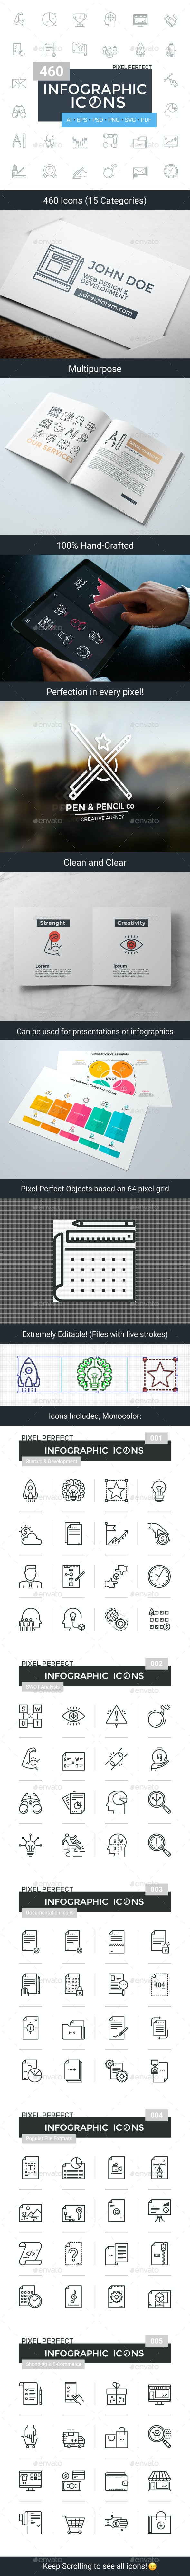 460 Infographic Icons. Collection 1 - Business Icons